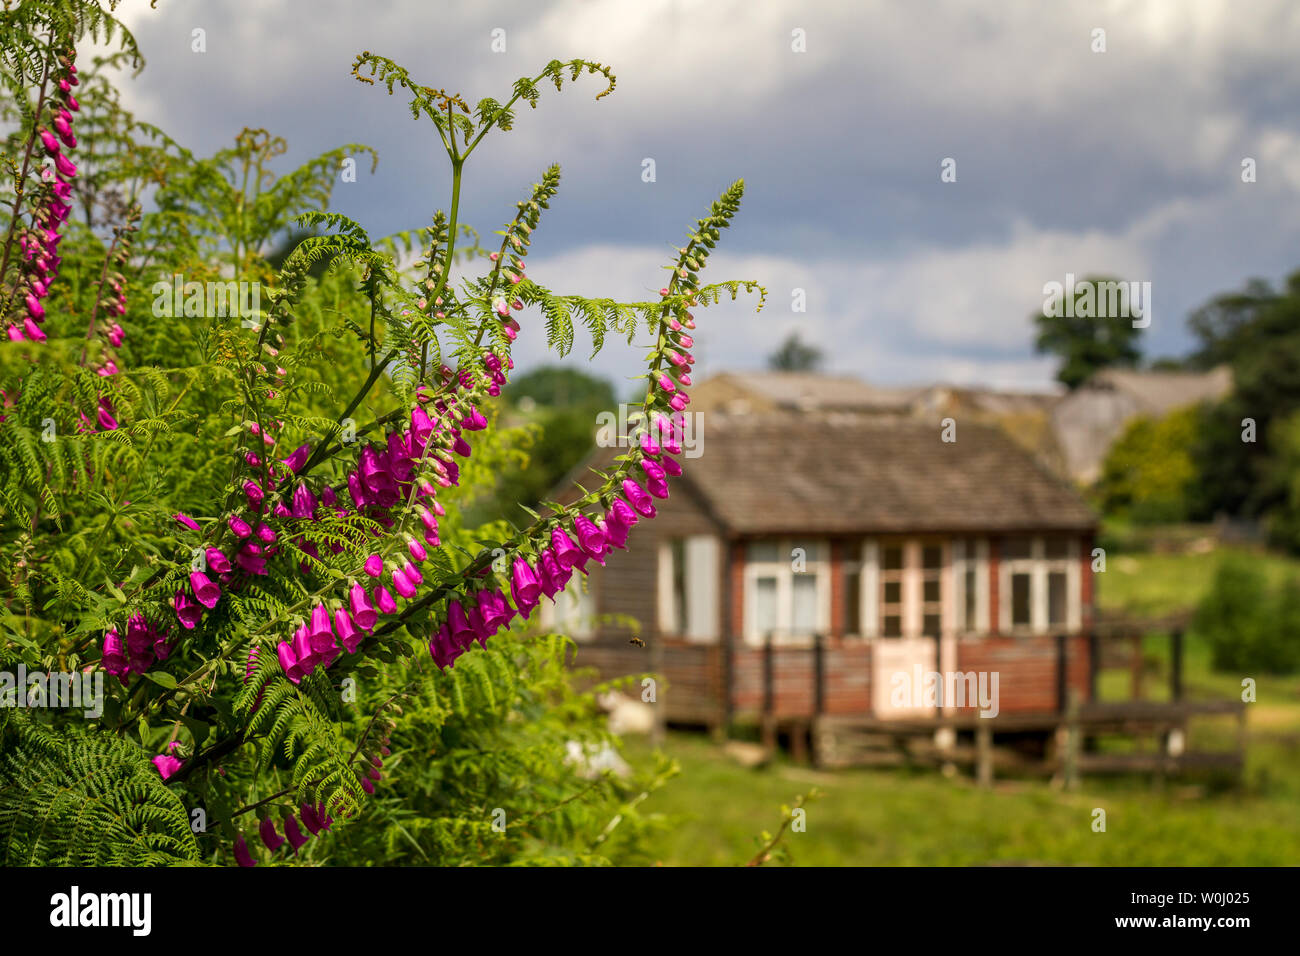 Bee flying towards pink foxgloves on a country lane near a ramshackle summerhouse once used by tourists in the summer, Burley Woodhead, Yorkshire, UK - Stock Image